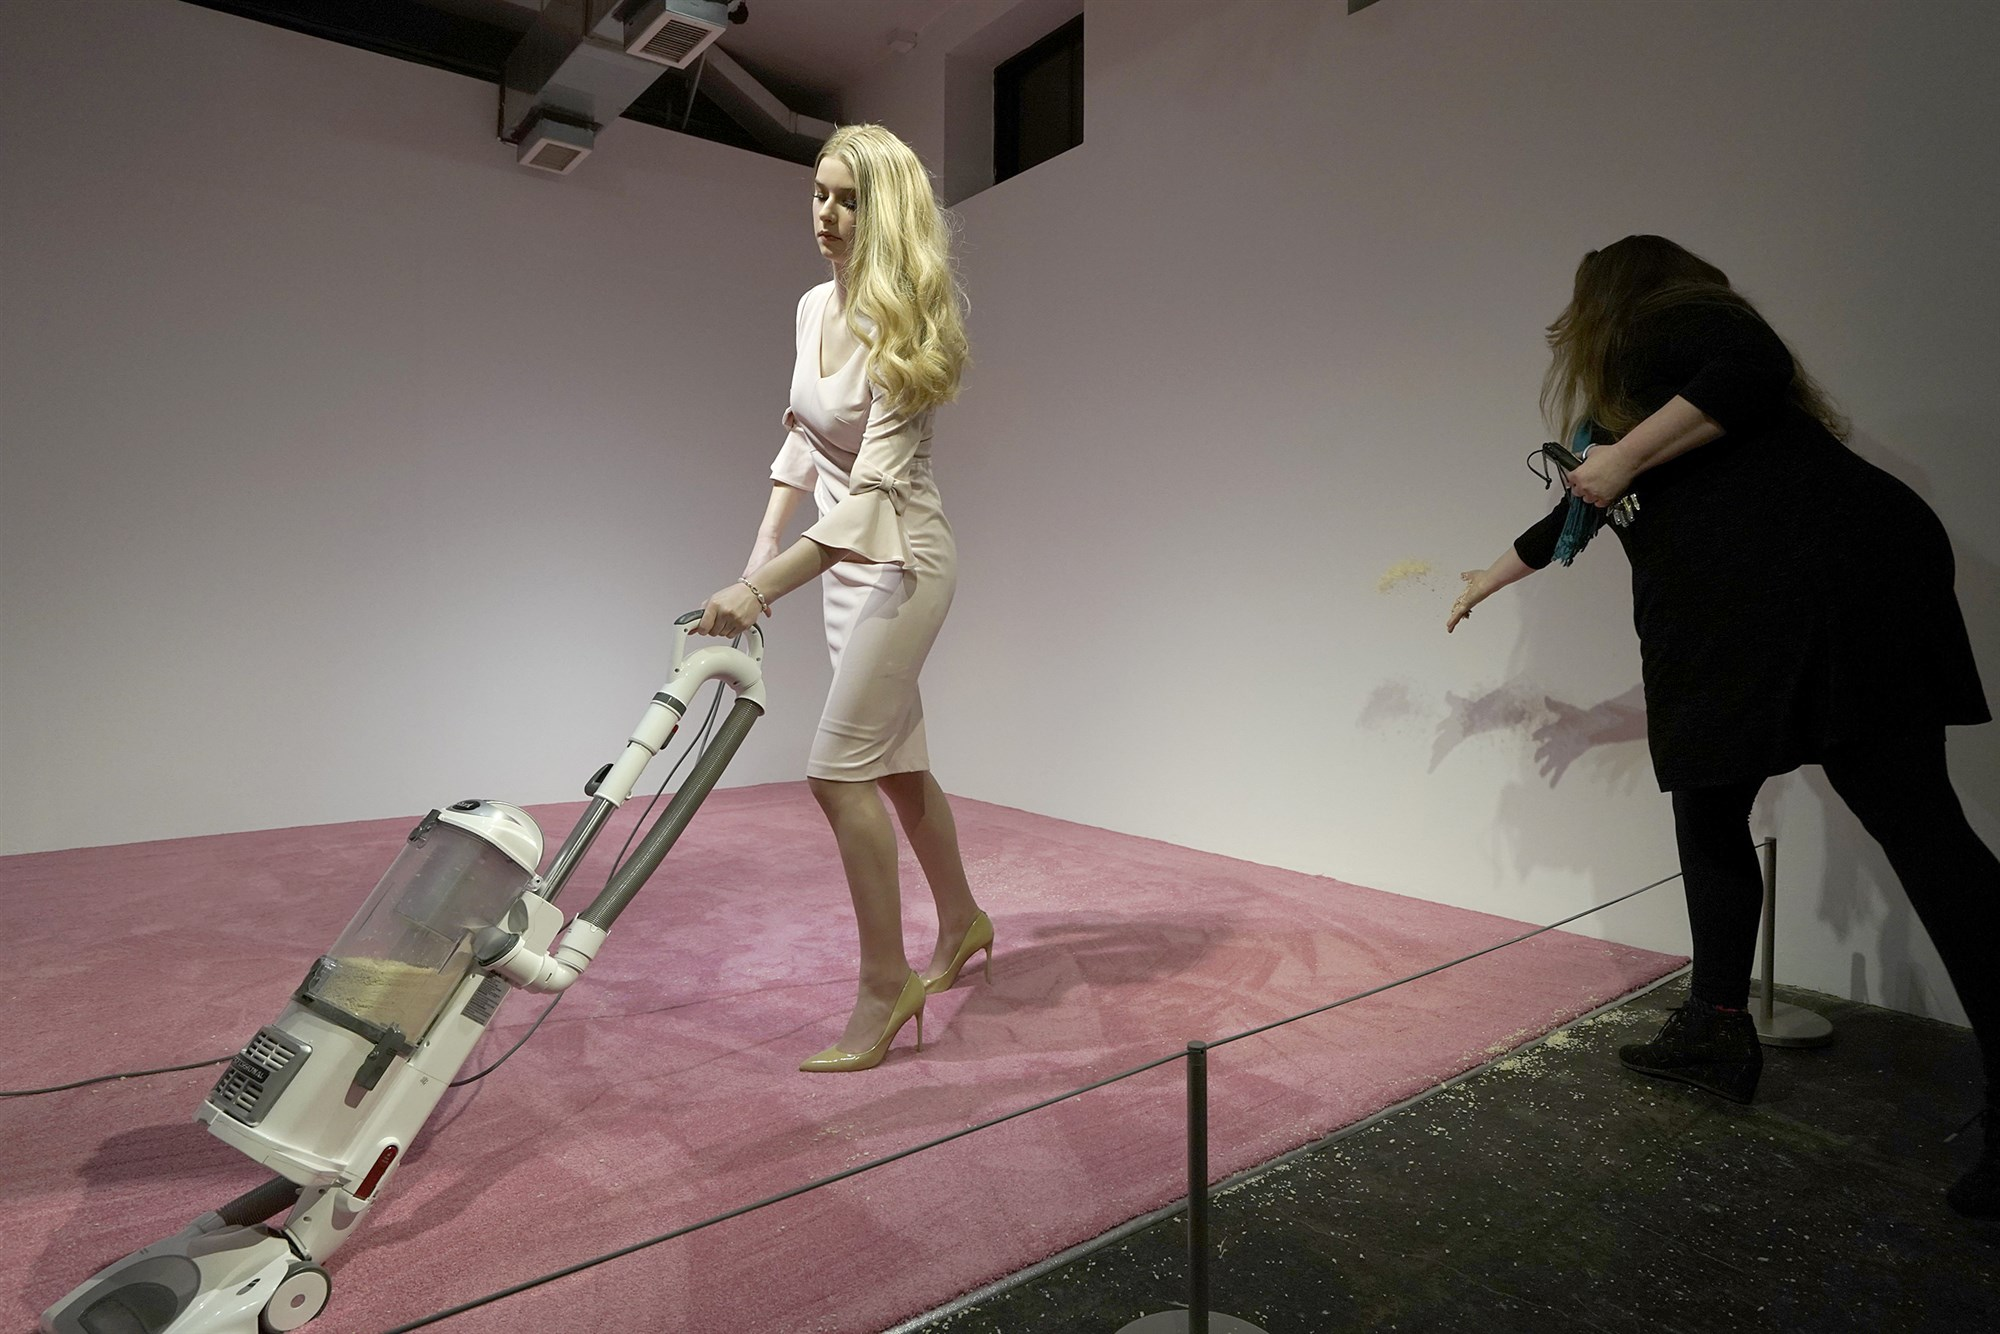 Ivanka Trump responds to D.C. art exhibit 'Ivanka Vacuuming' - NBC News, February 5, 2019